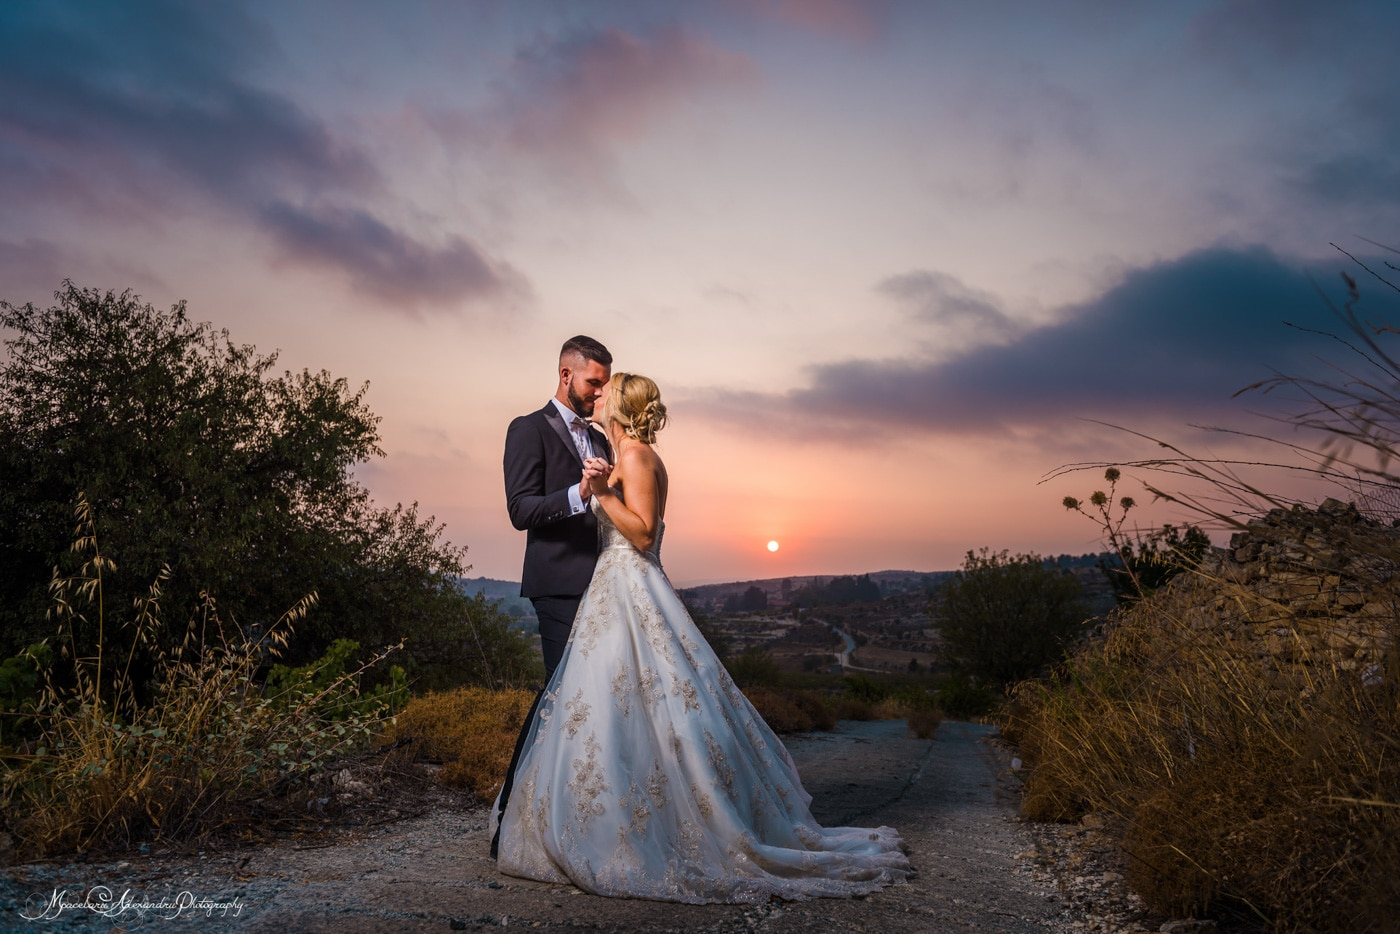 Superb wedding photos Cyprus at the sunset